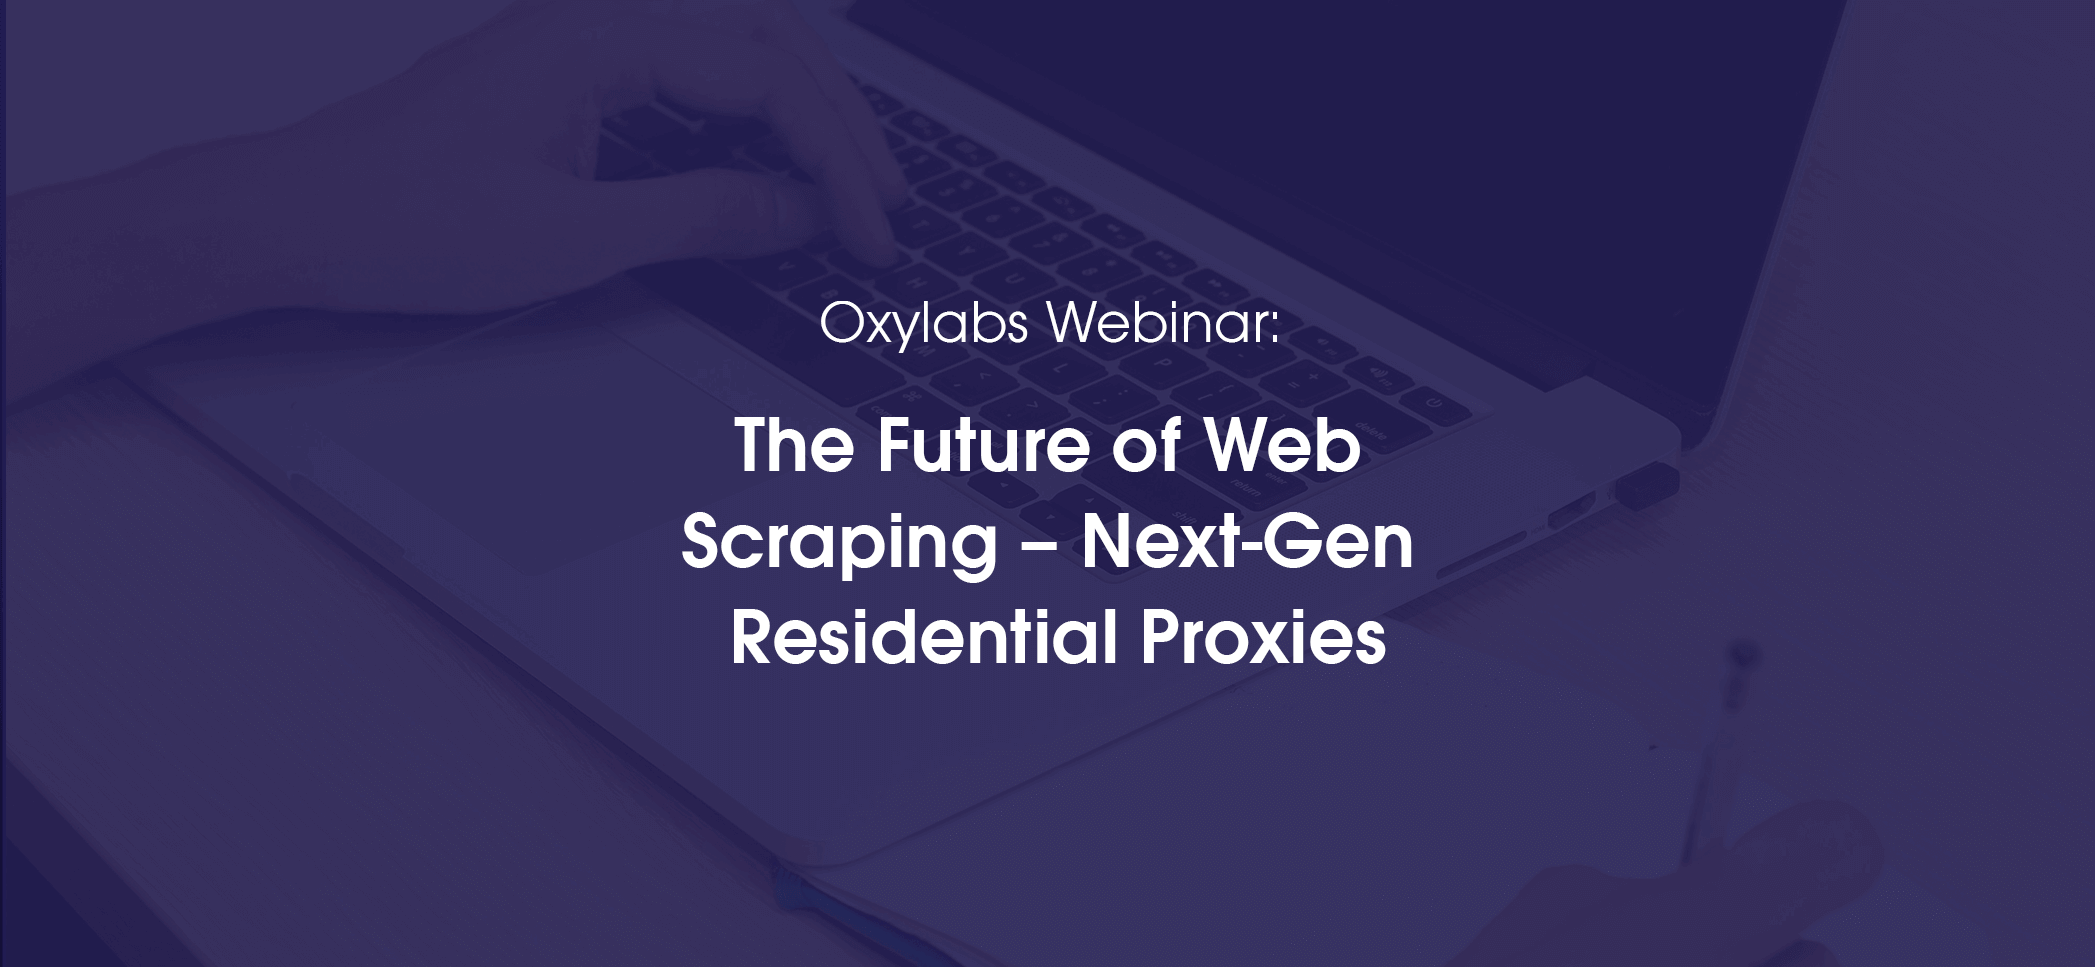 Oxylabs Webinar: The Future of Web Scraping – Next-Gen Residential Proxies